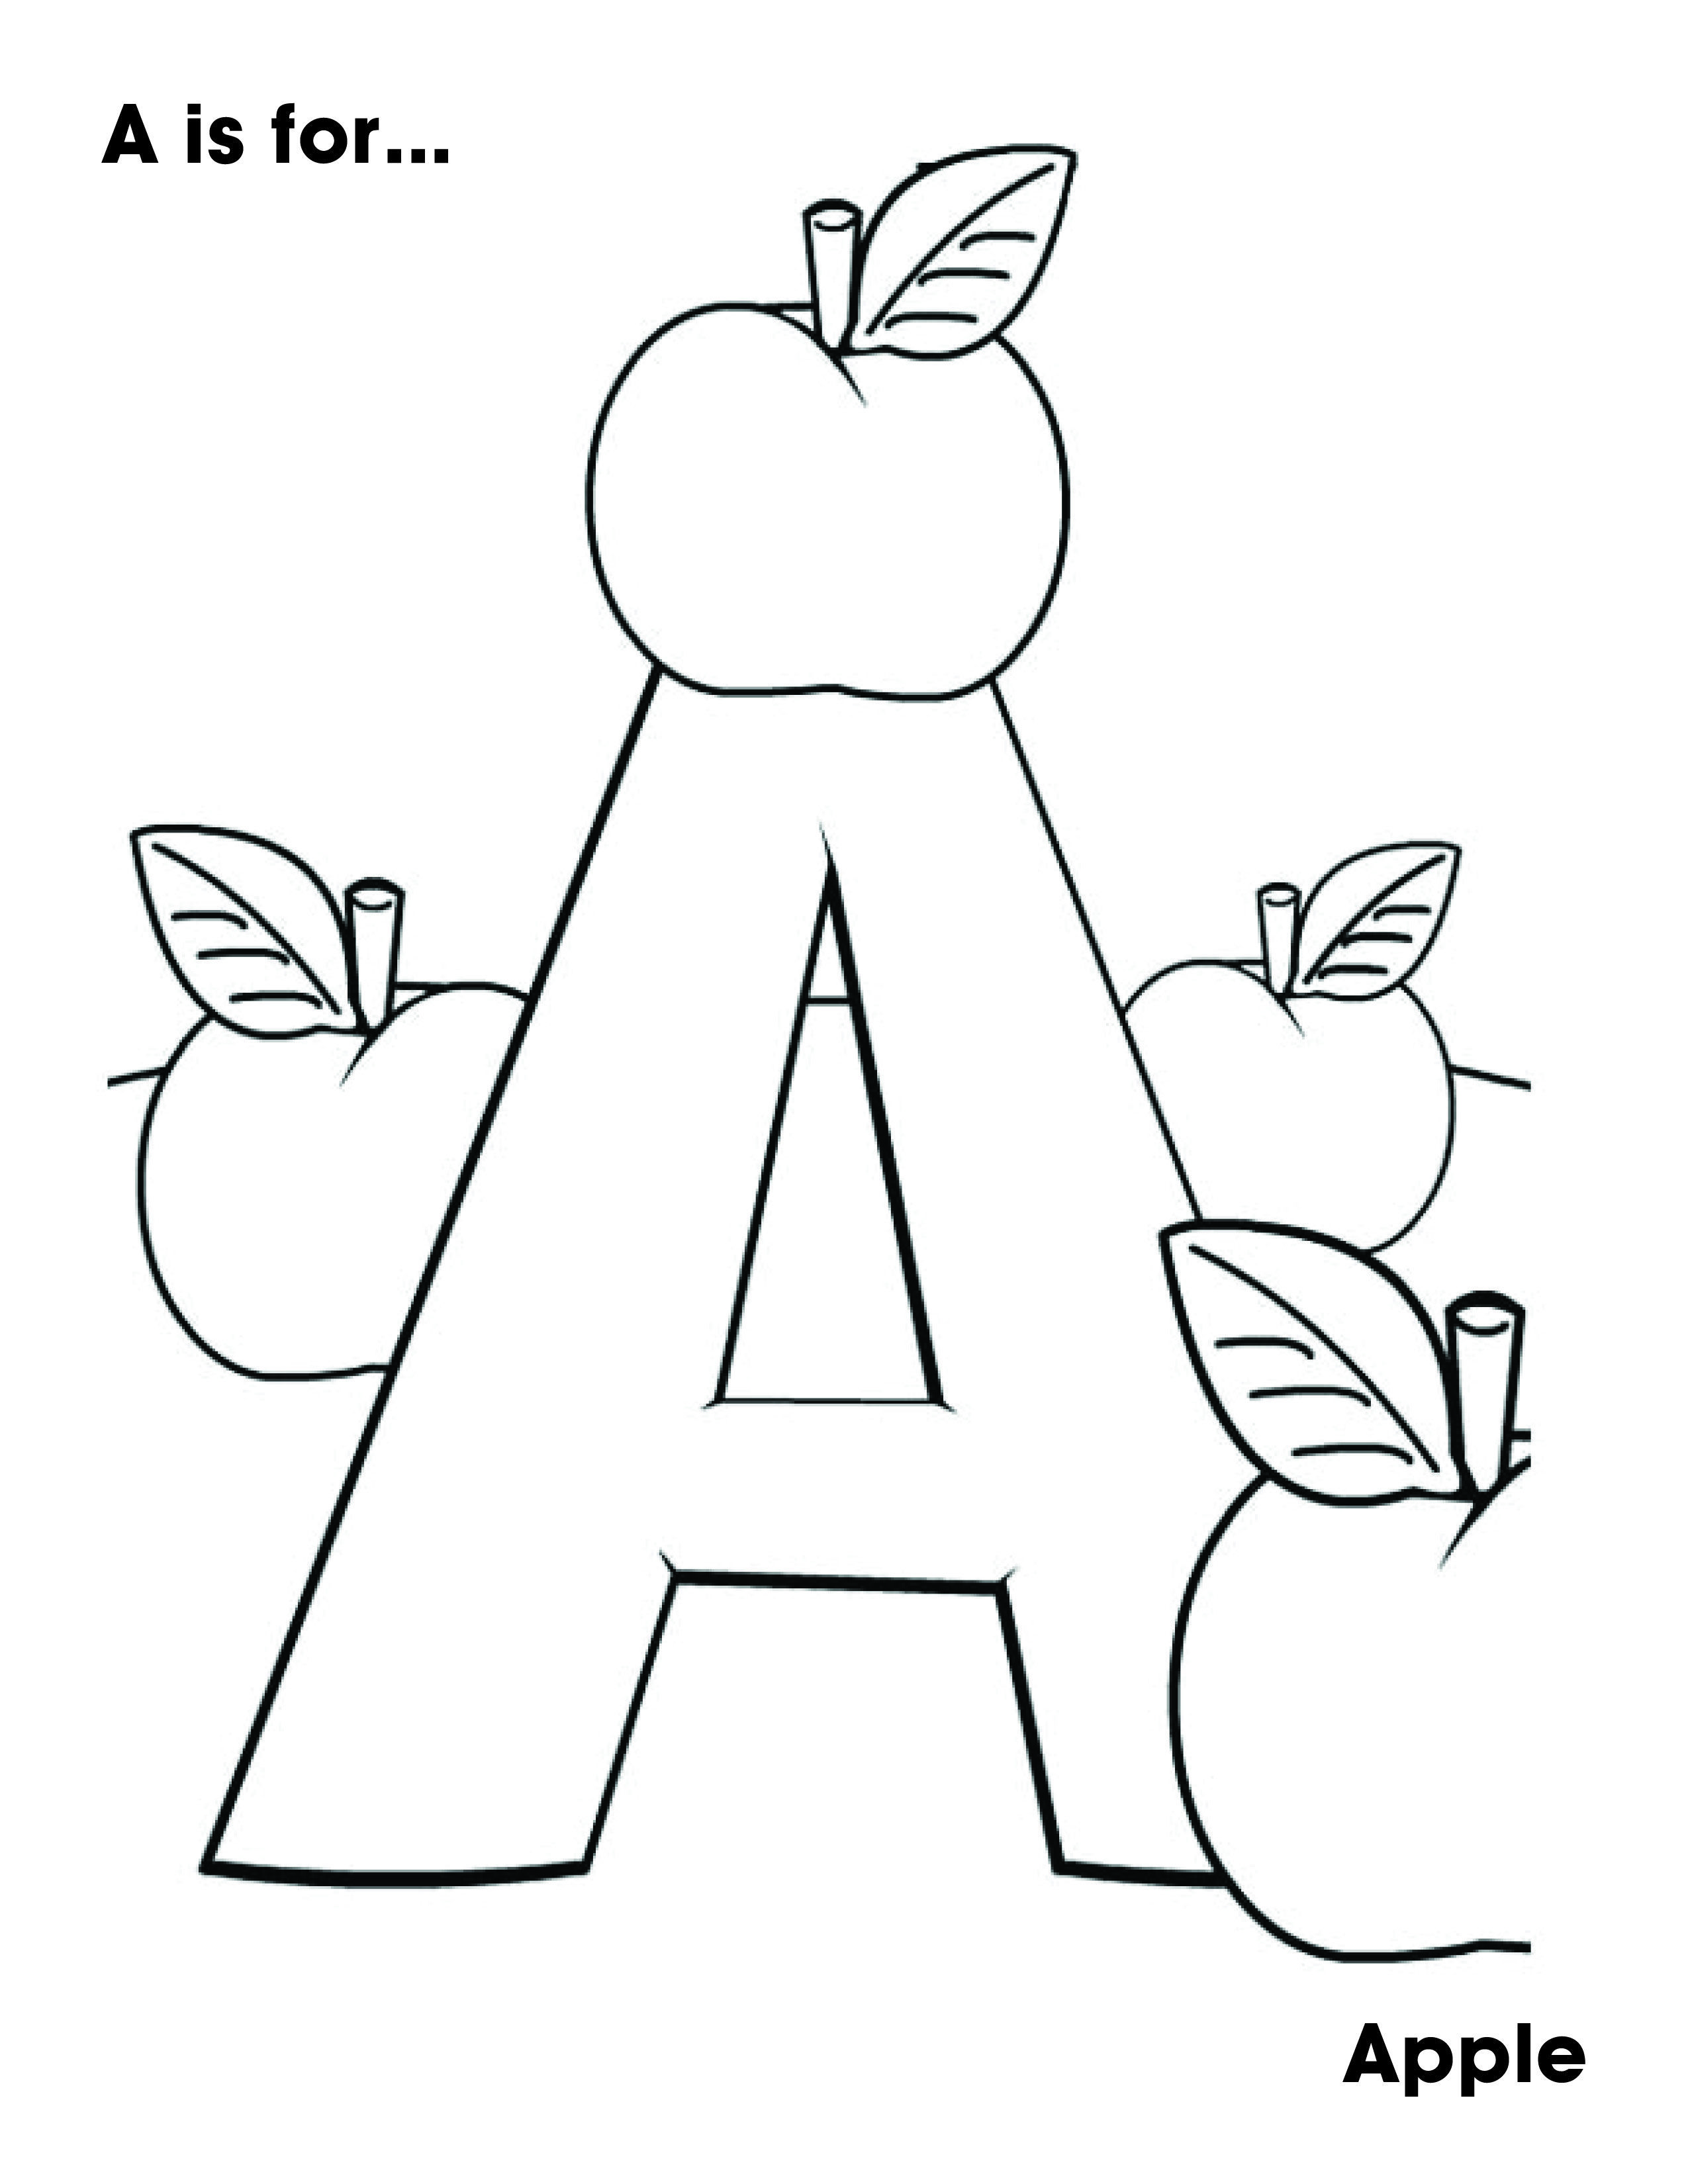 A Is For Apple Alphabet Coloring Pages Preschool Coloring Pages Kindergarten Coloring Pa In 2021 Alphabet Coloring Pages Kindergarten Coloring Pages Abc Coloring Pages